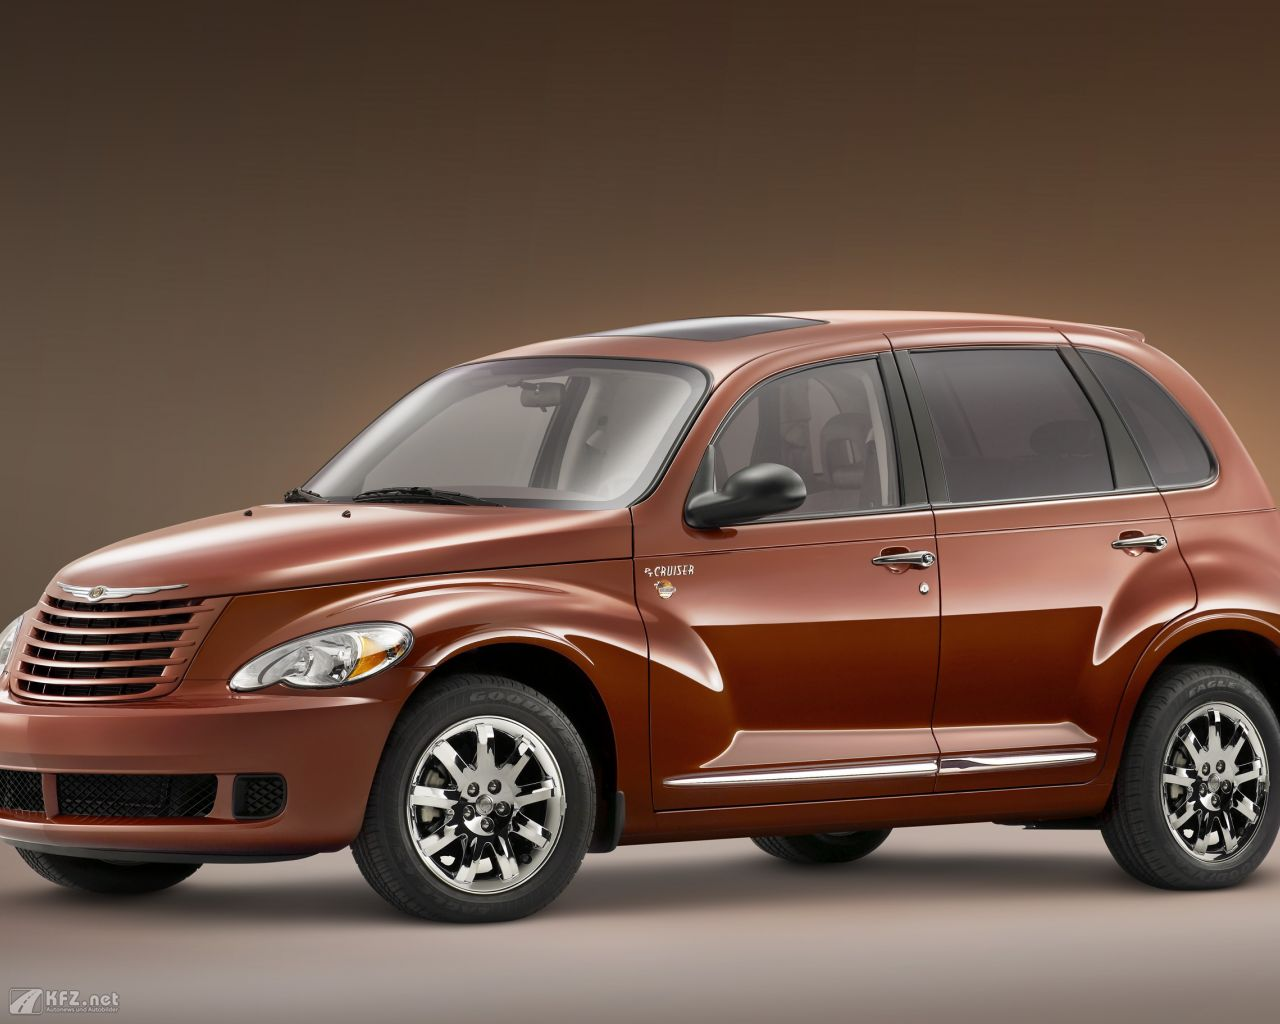 chrysler-pt-cruiser-1280x1024-6